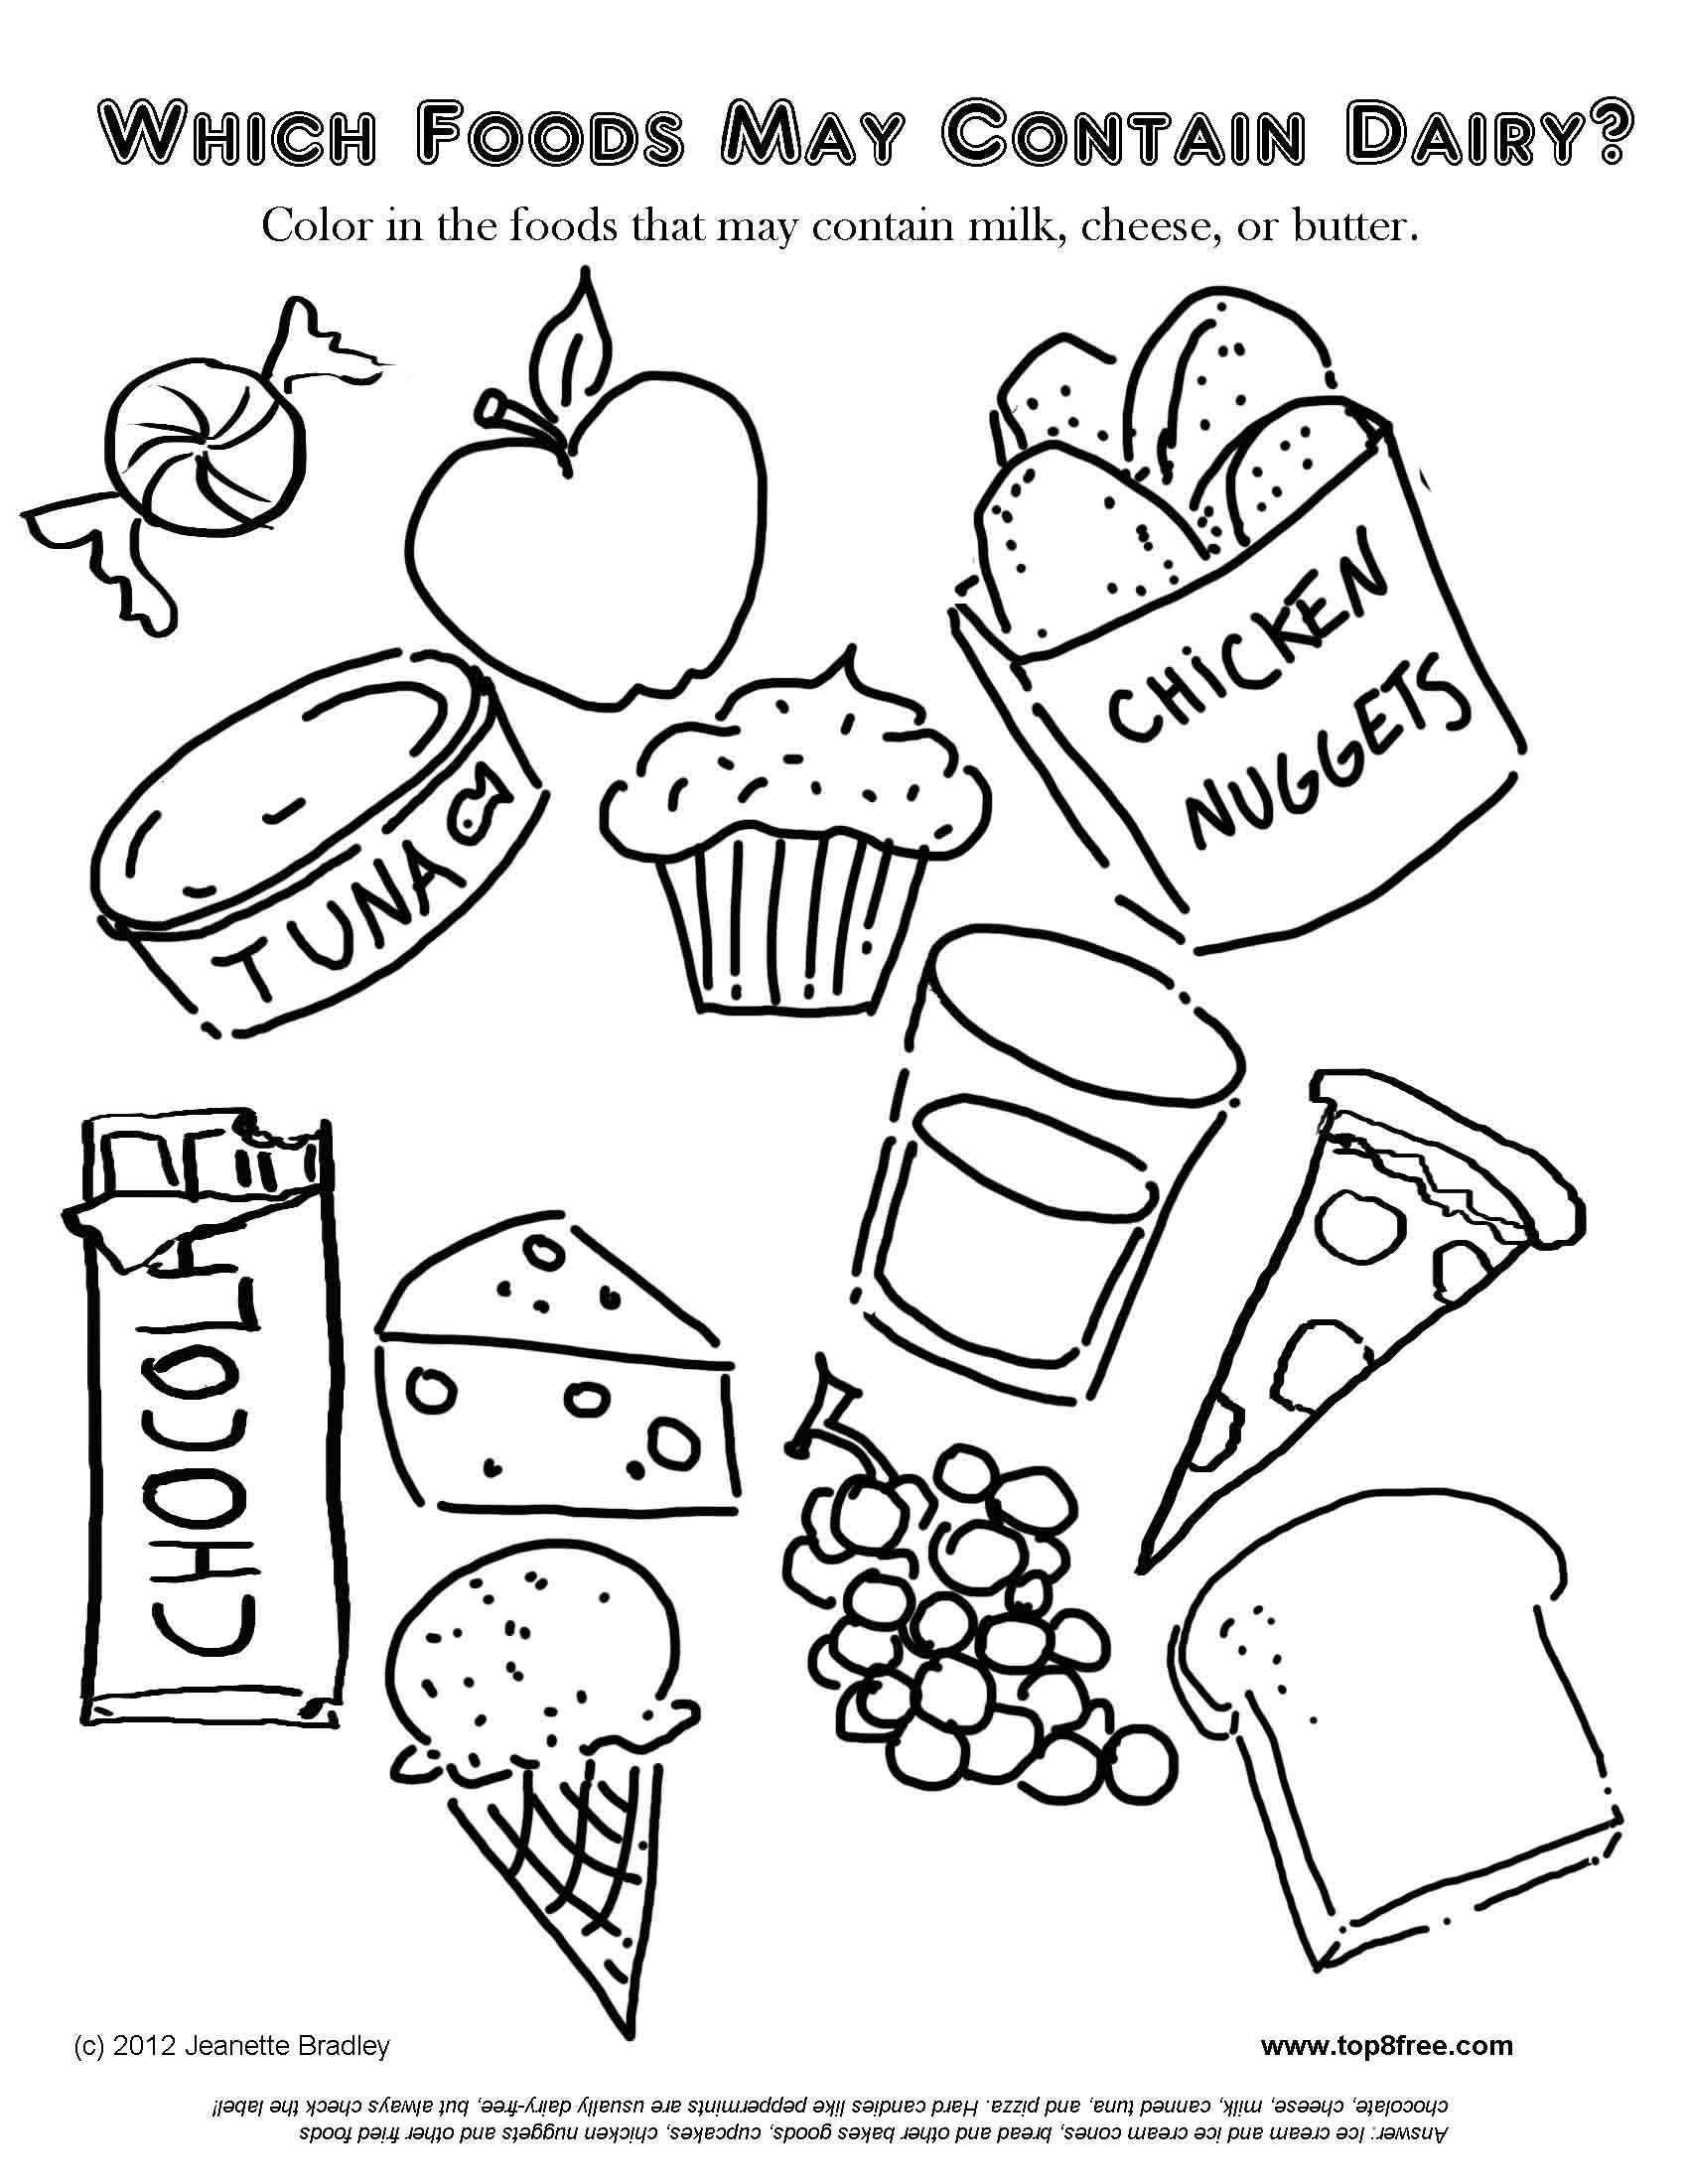 Food Allergy Coloring Pages For Kids